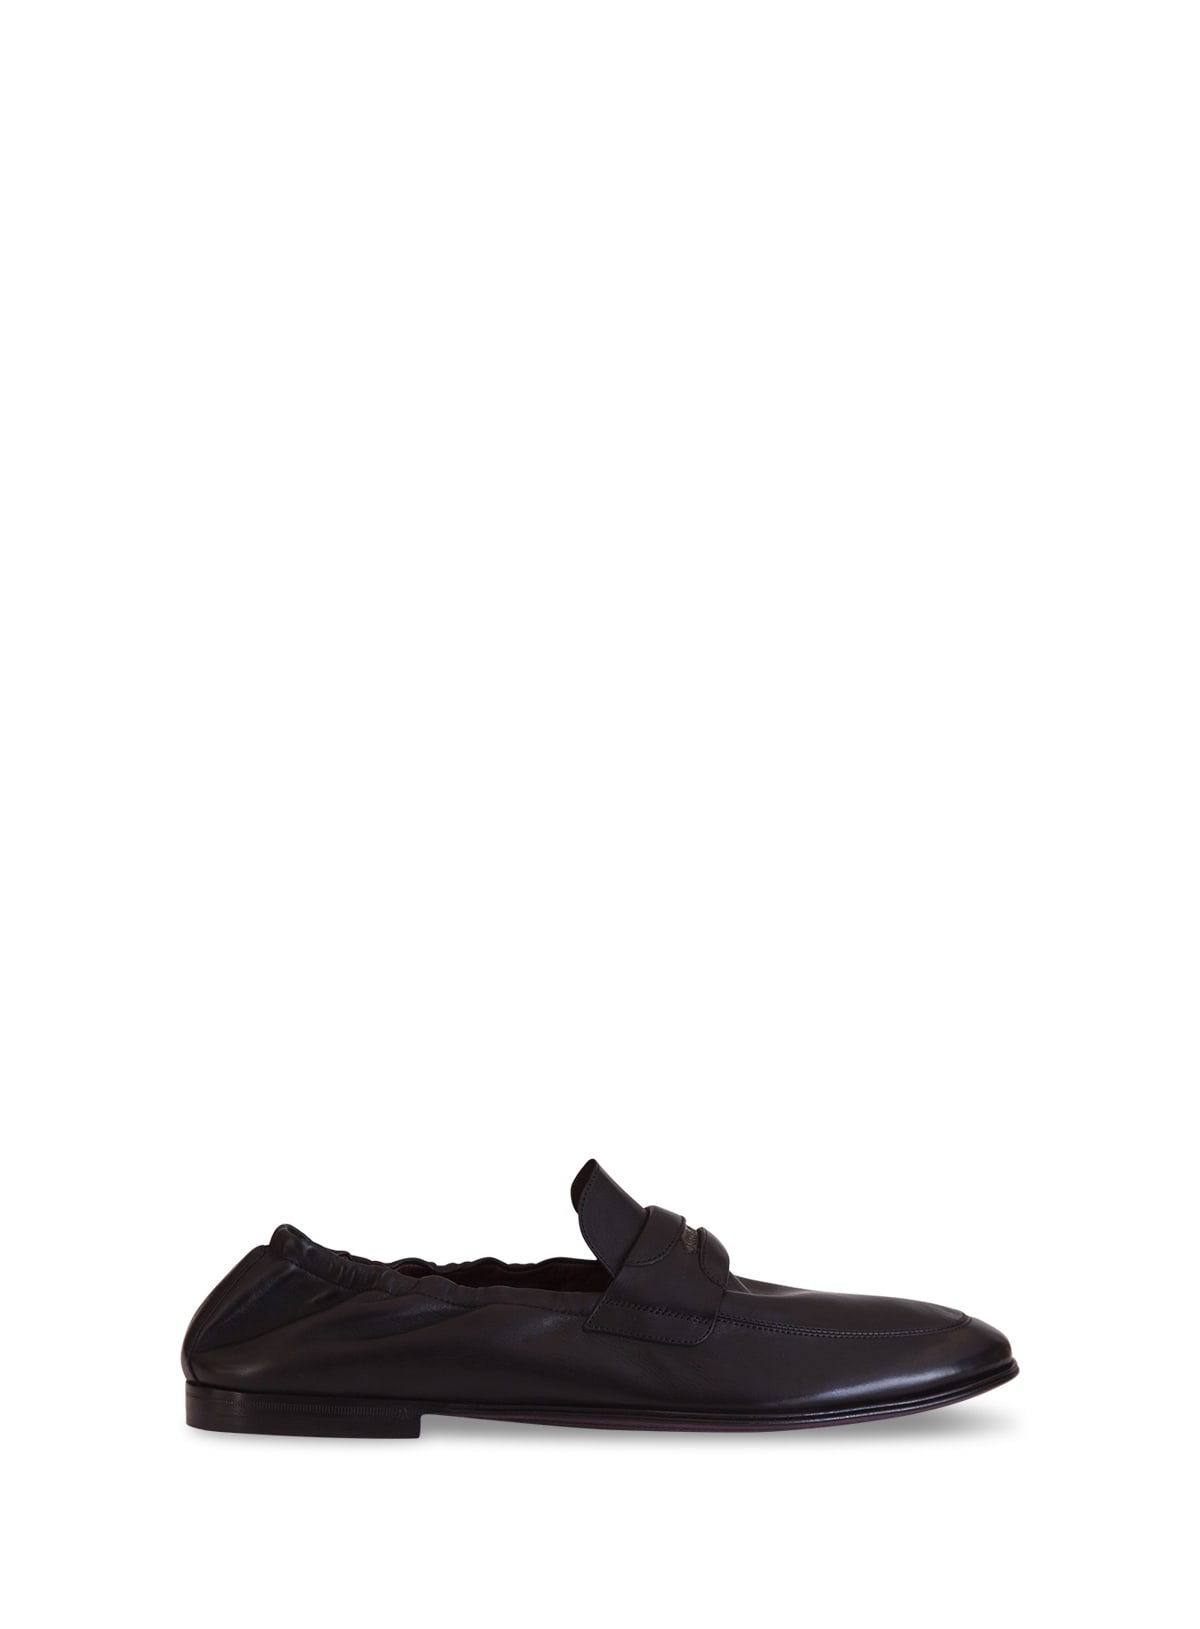 Dolce & Gabbana LOGO-EMBOSSED LEATHER SLIPPERS